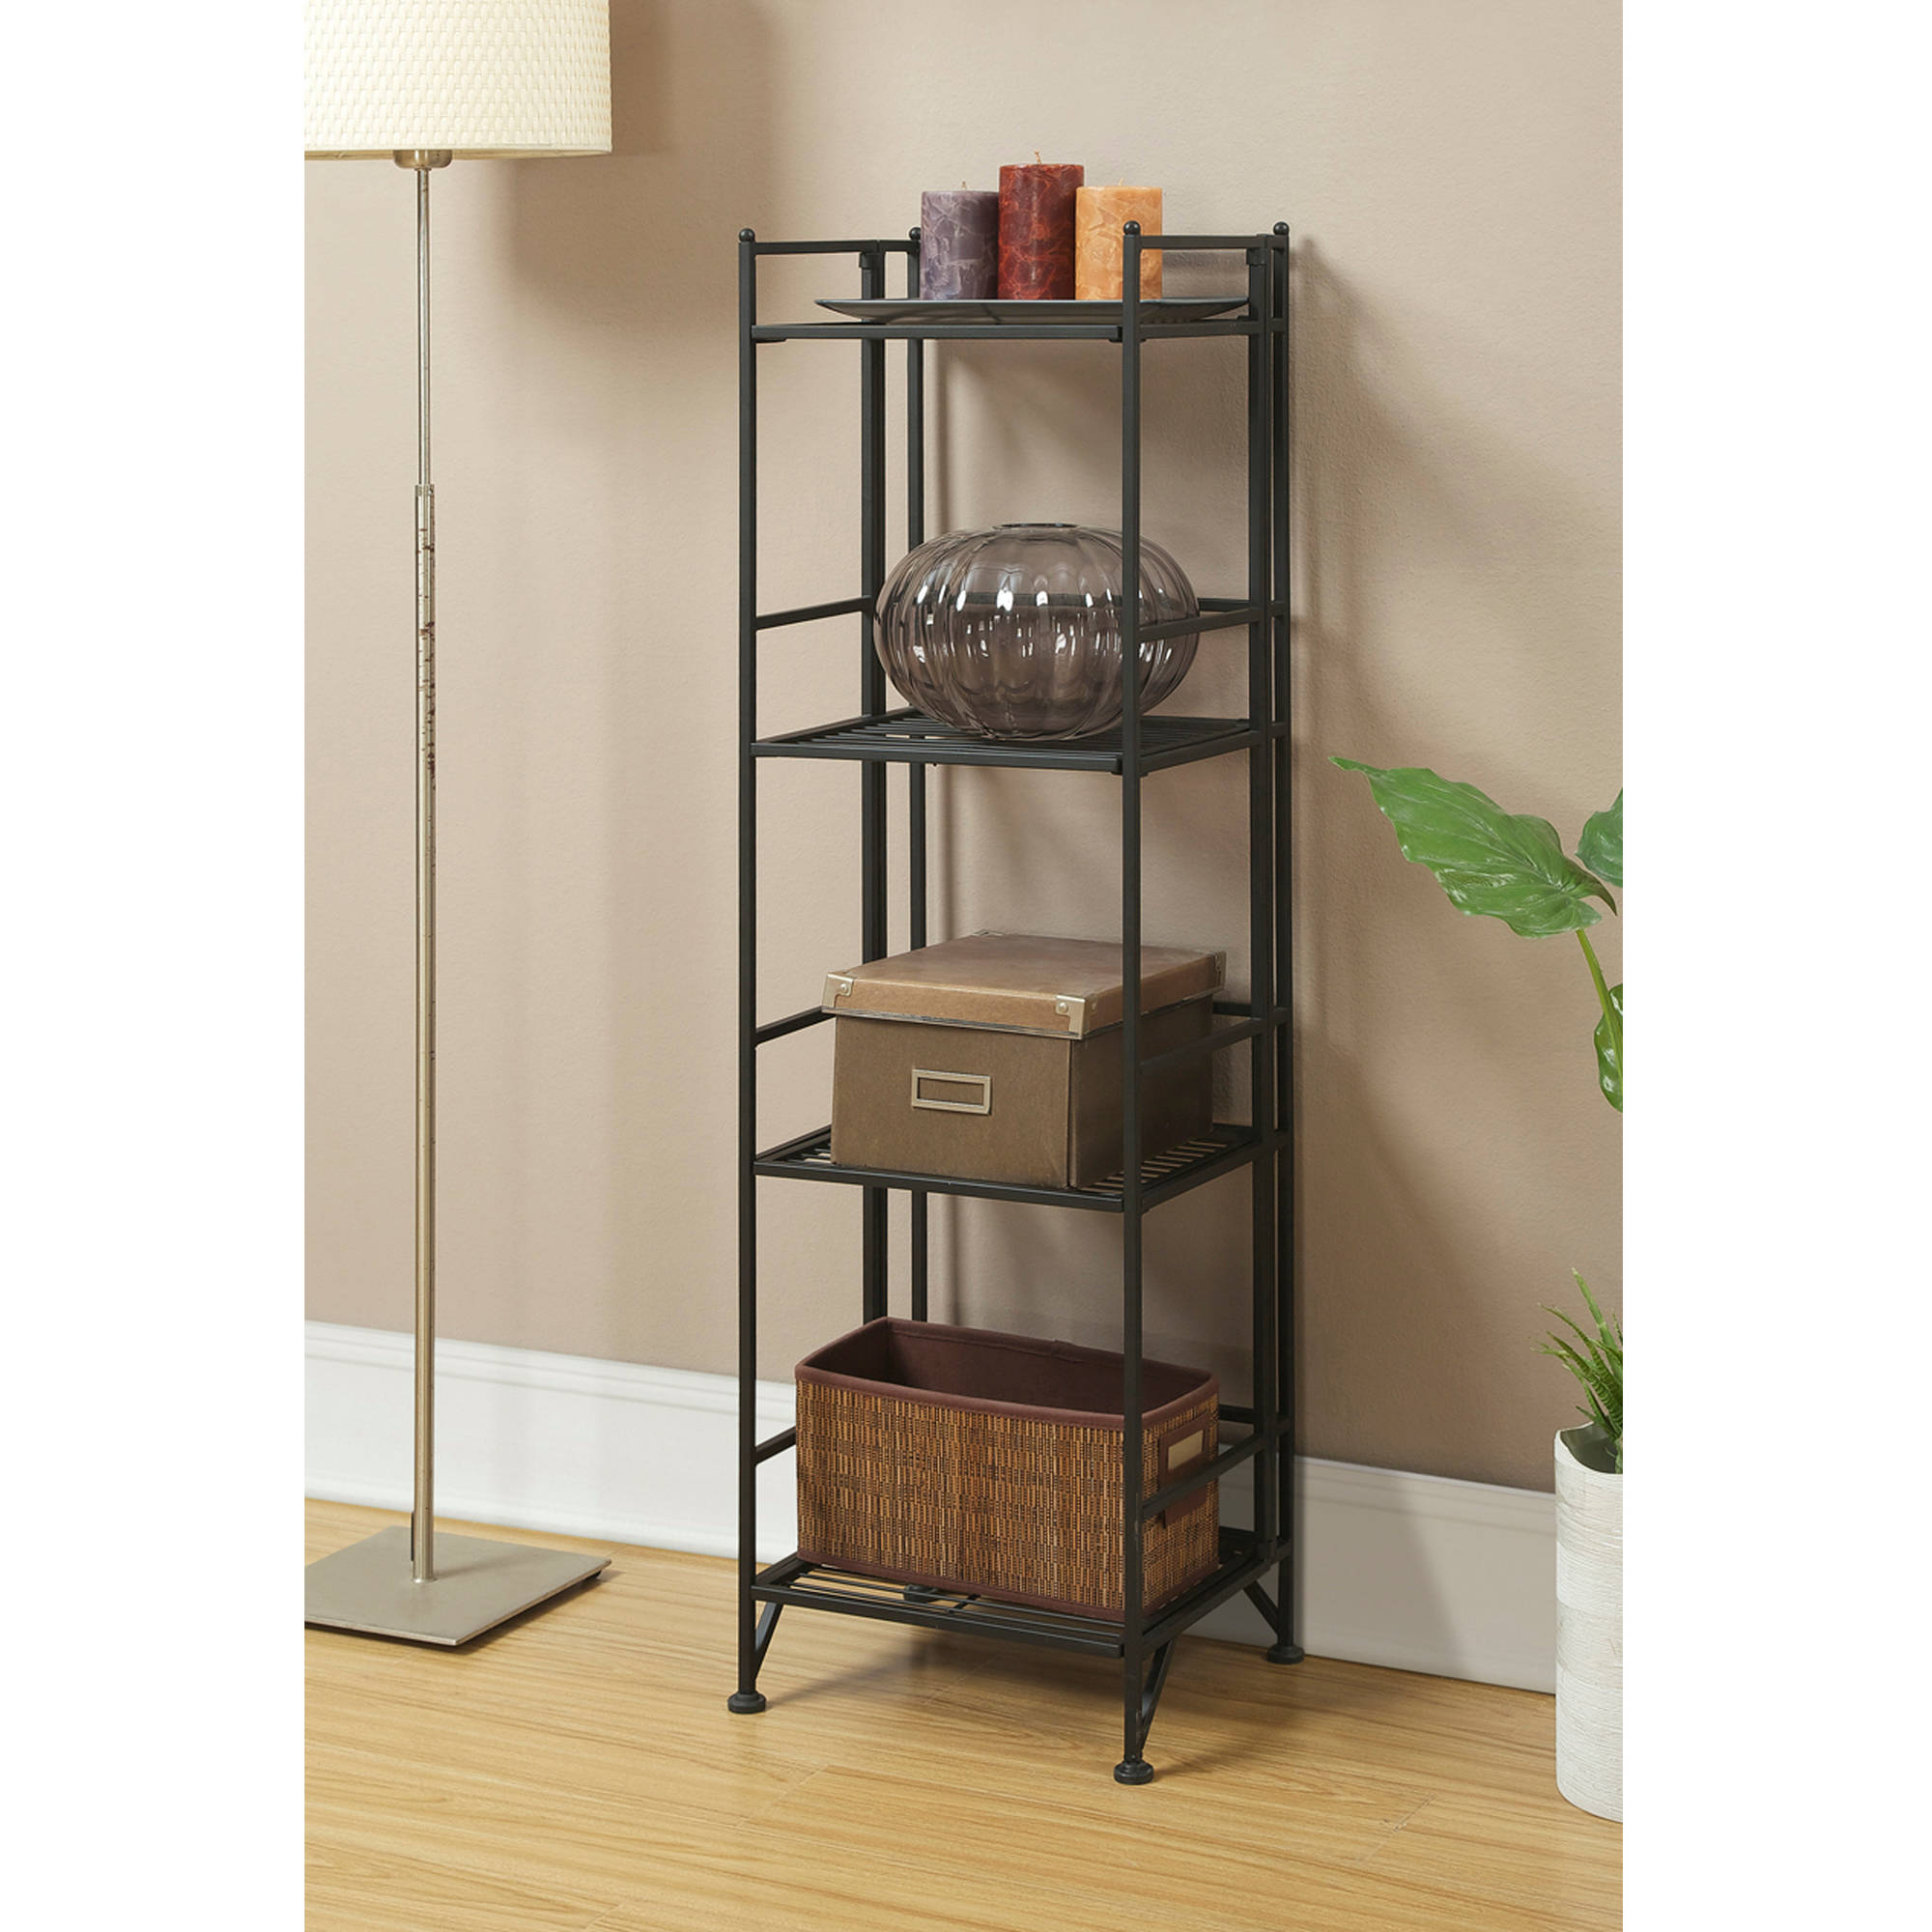 Convenience Concepts Designs2Go Metal Folding 4 Shelf Bookcase, Multiple Finishes by Convenience Concepts, Inc.